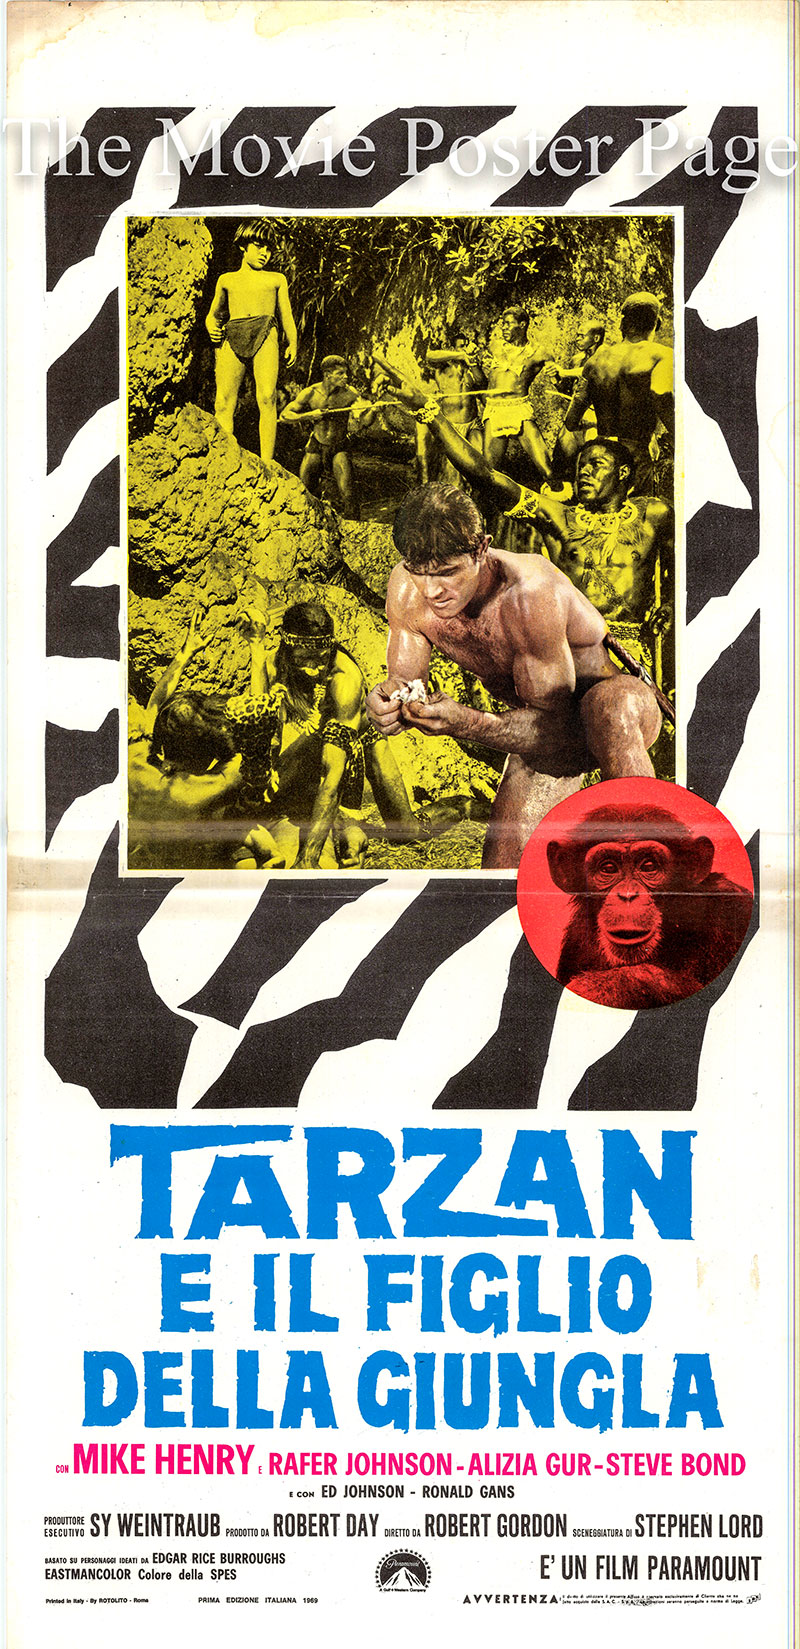 Pictured is an Italian locandina poster for the 1968 Robert Gordon film Tarzan and the Jungle Boy starring Mike Henry as Tarzan.